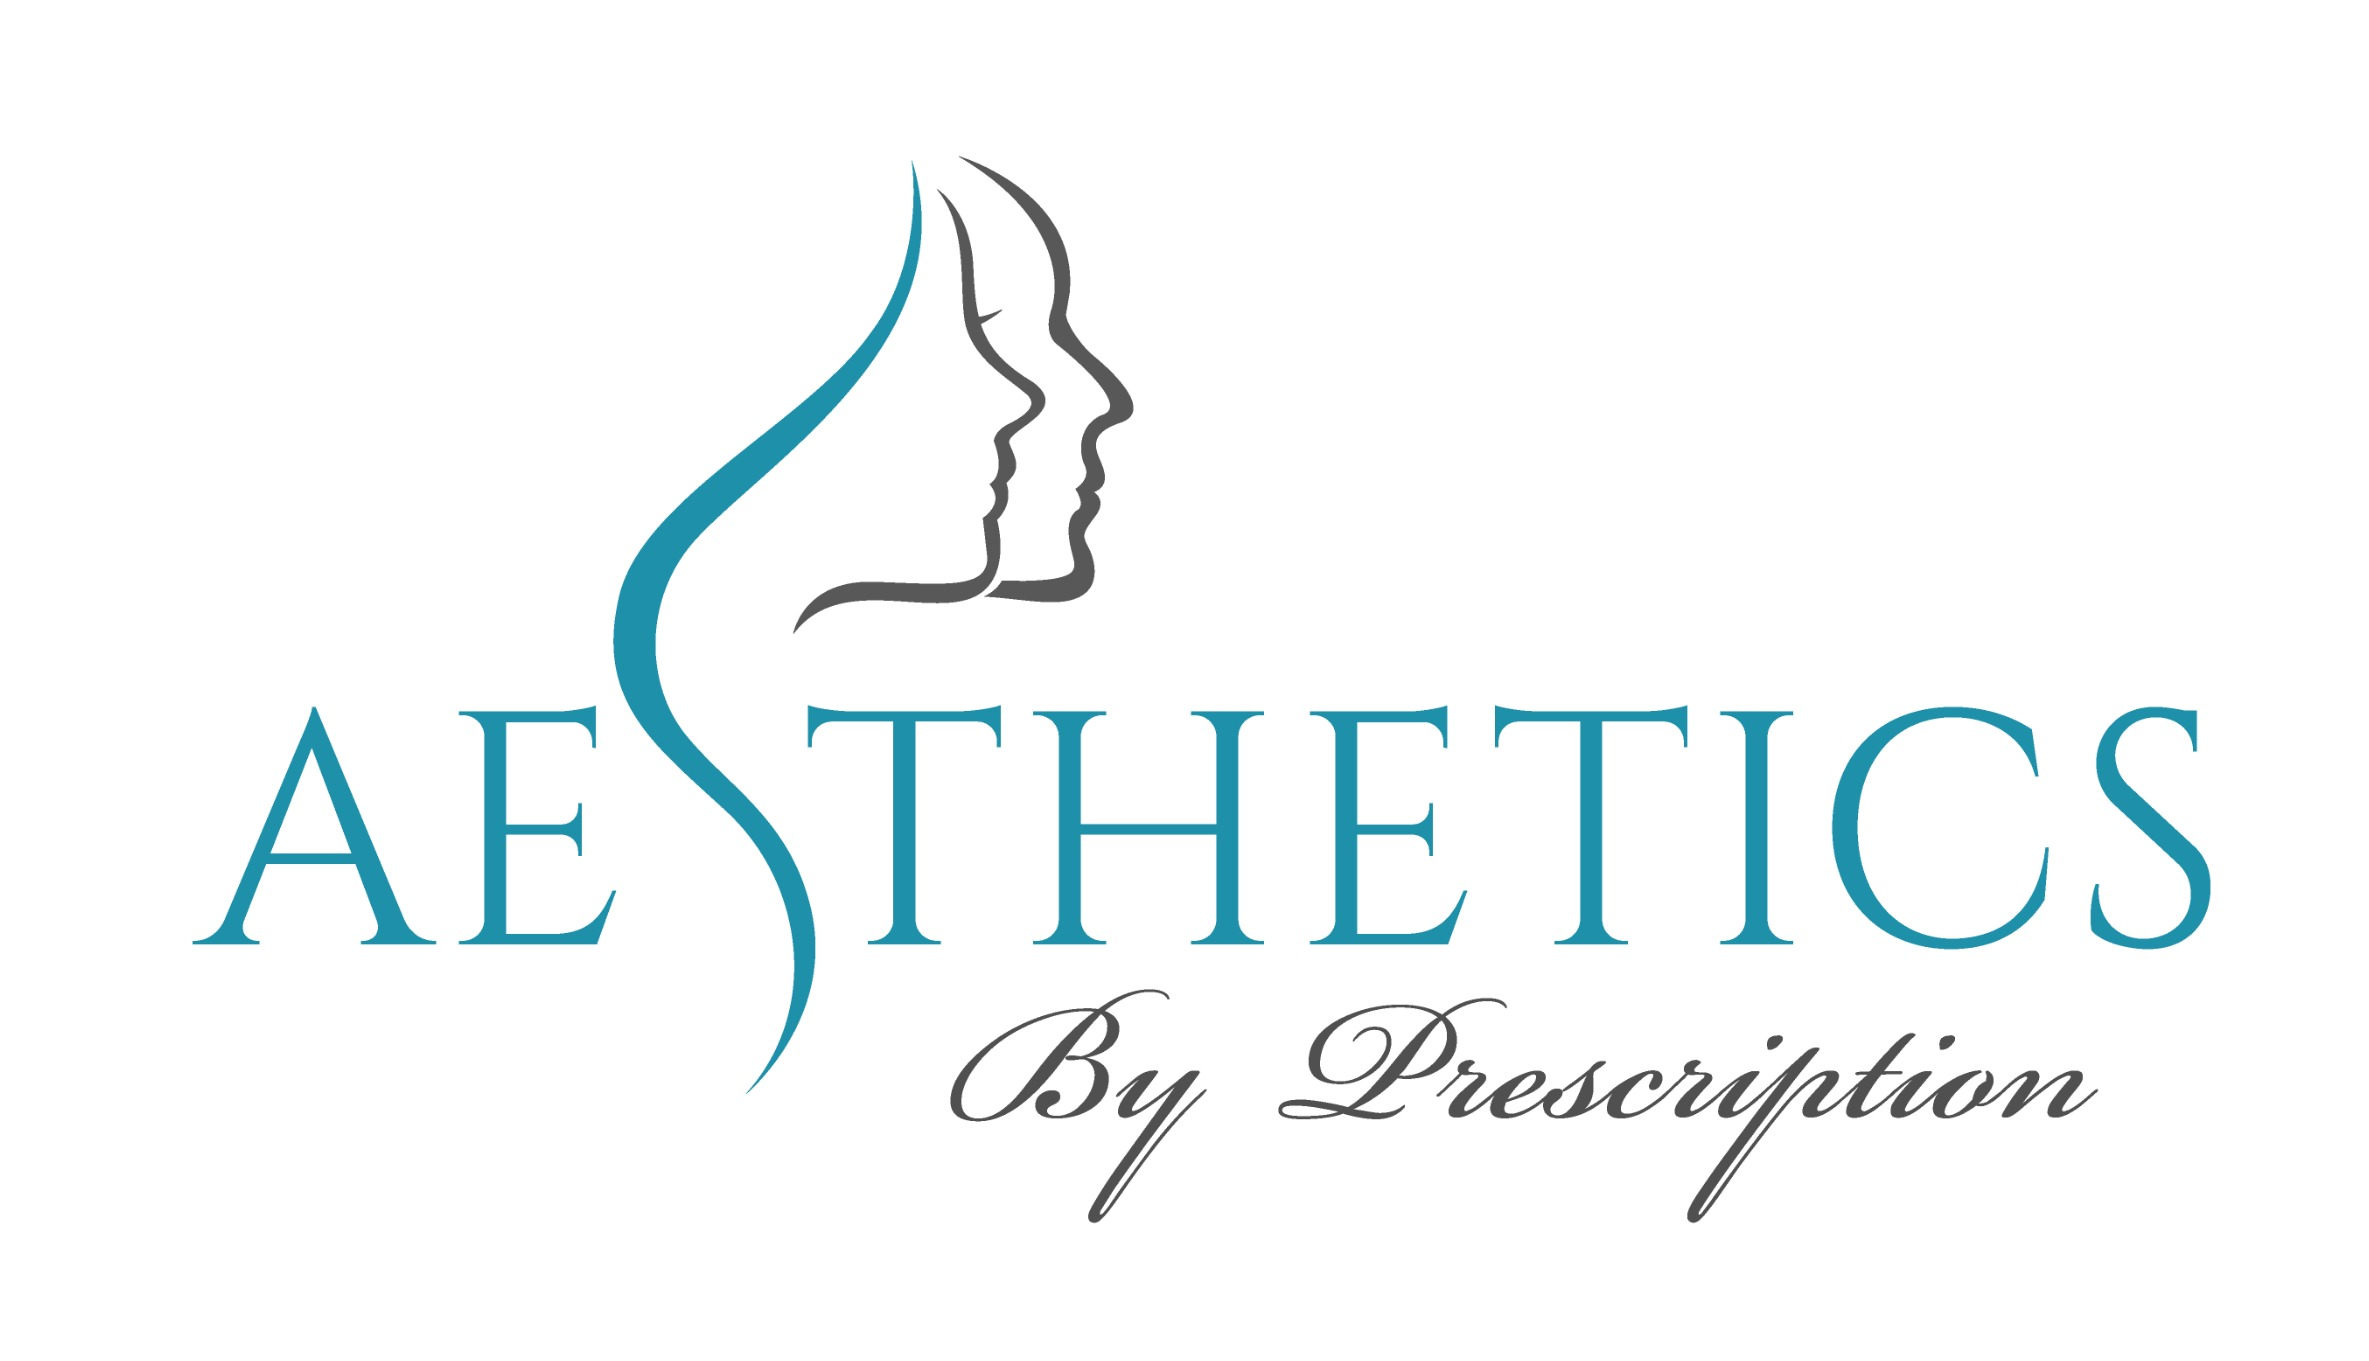 Aesthetics by Prescription